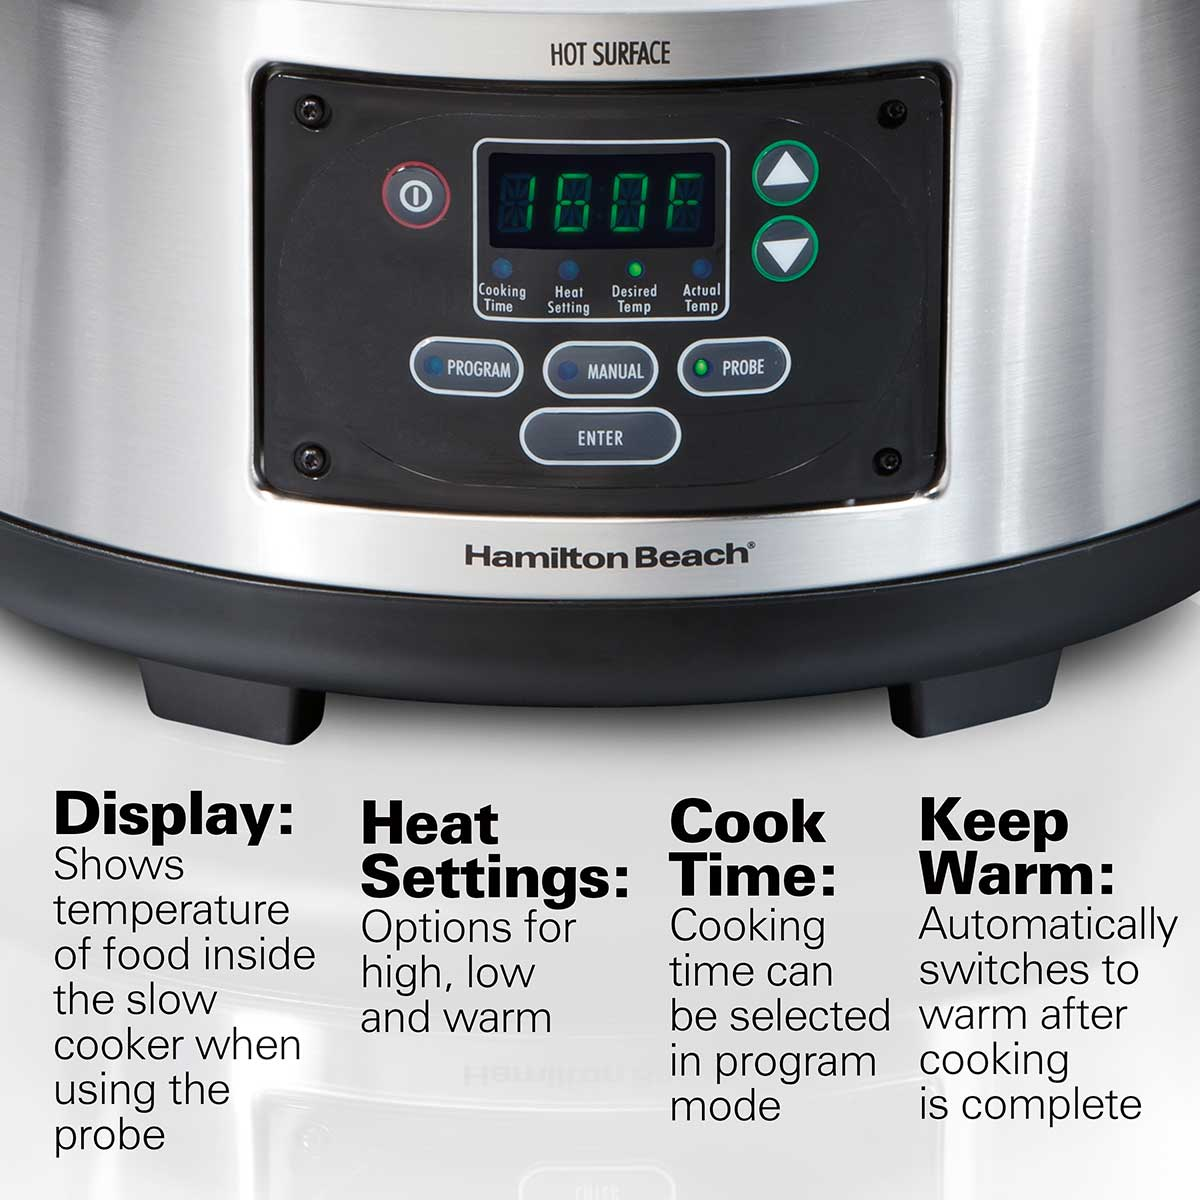 Set & Forget® 6 Qt. Programmable Slow Cooker (33969)